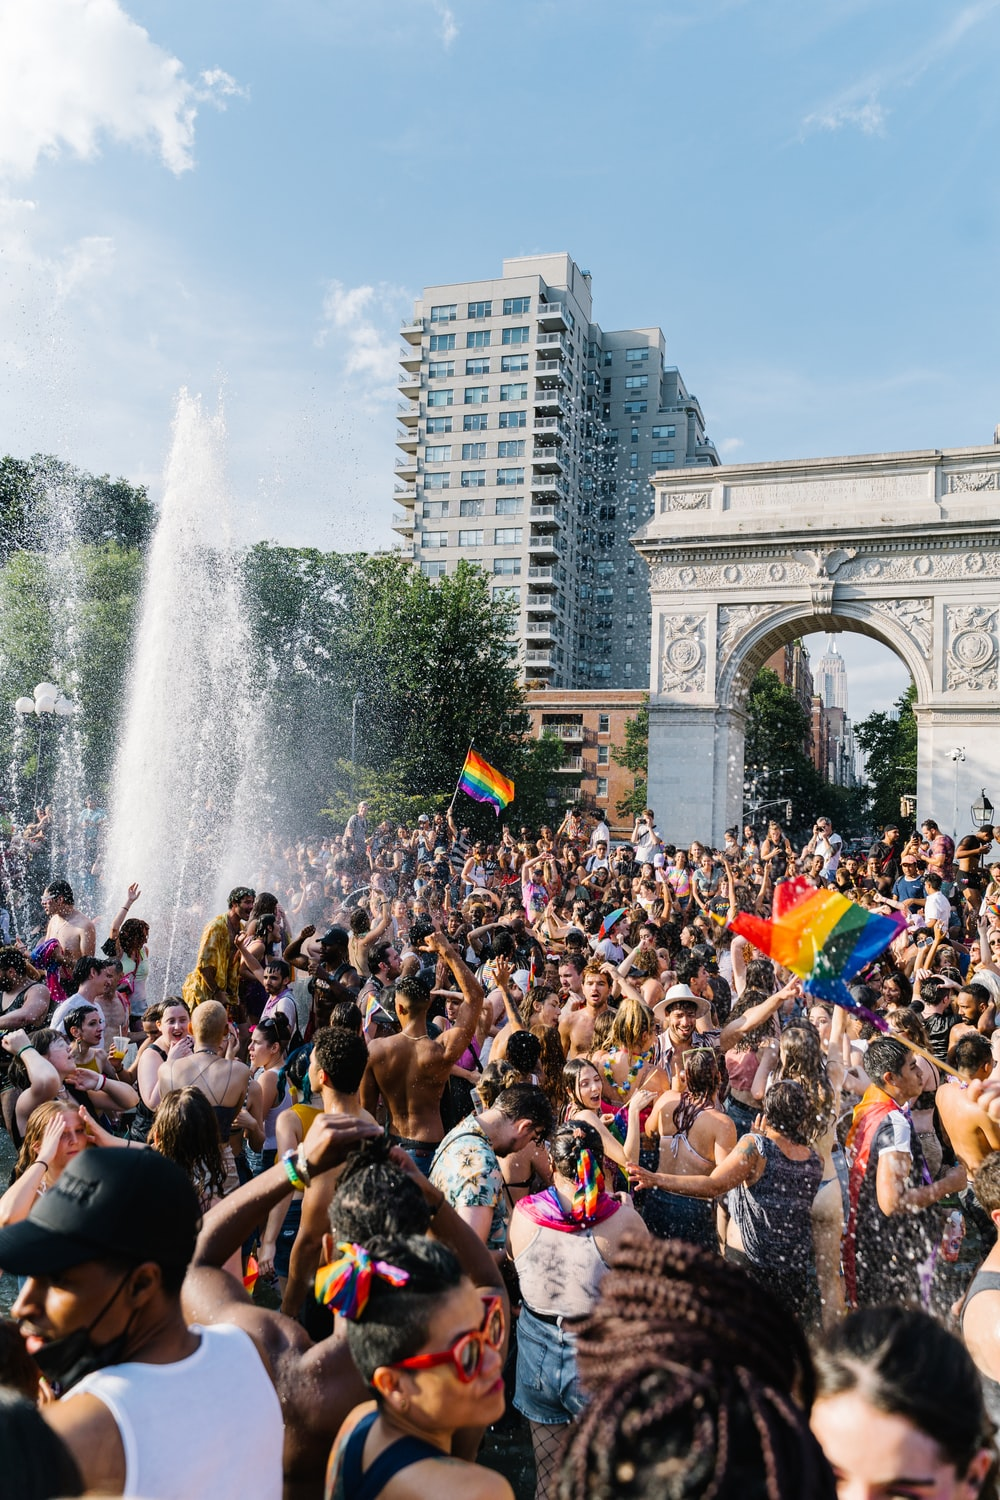 people gathering near fountain during daytime